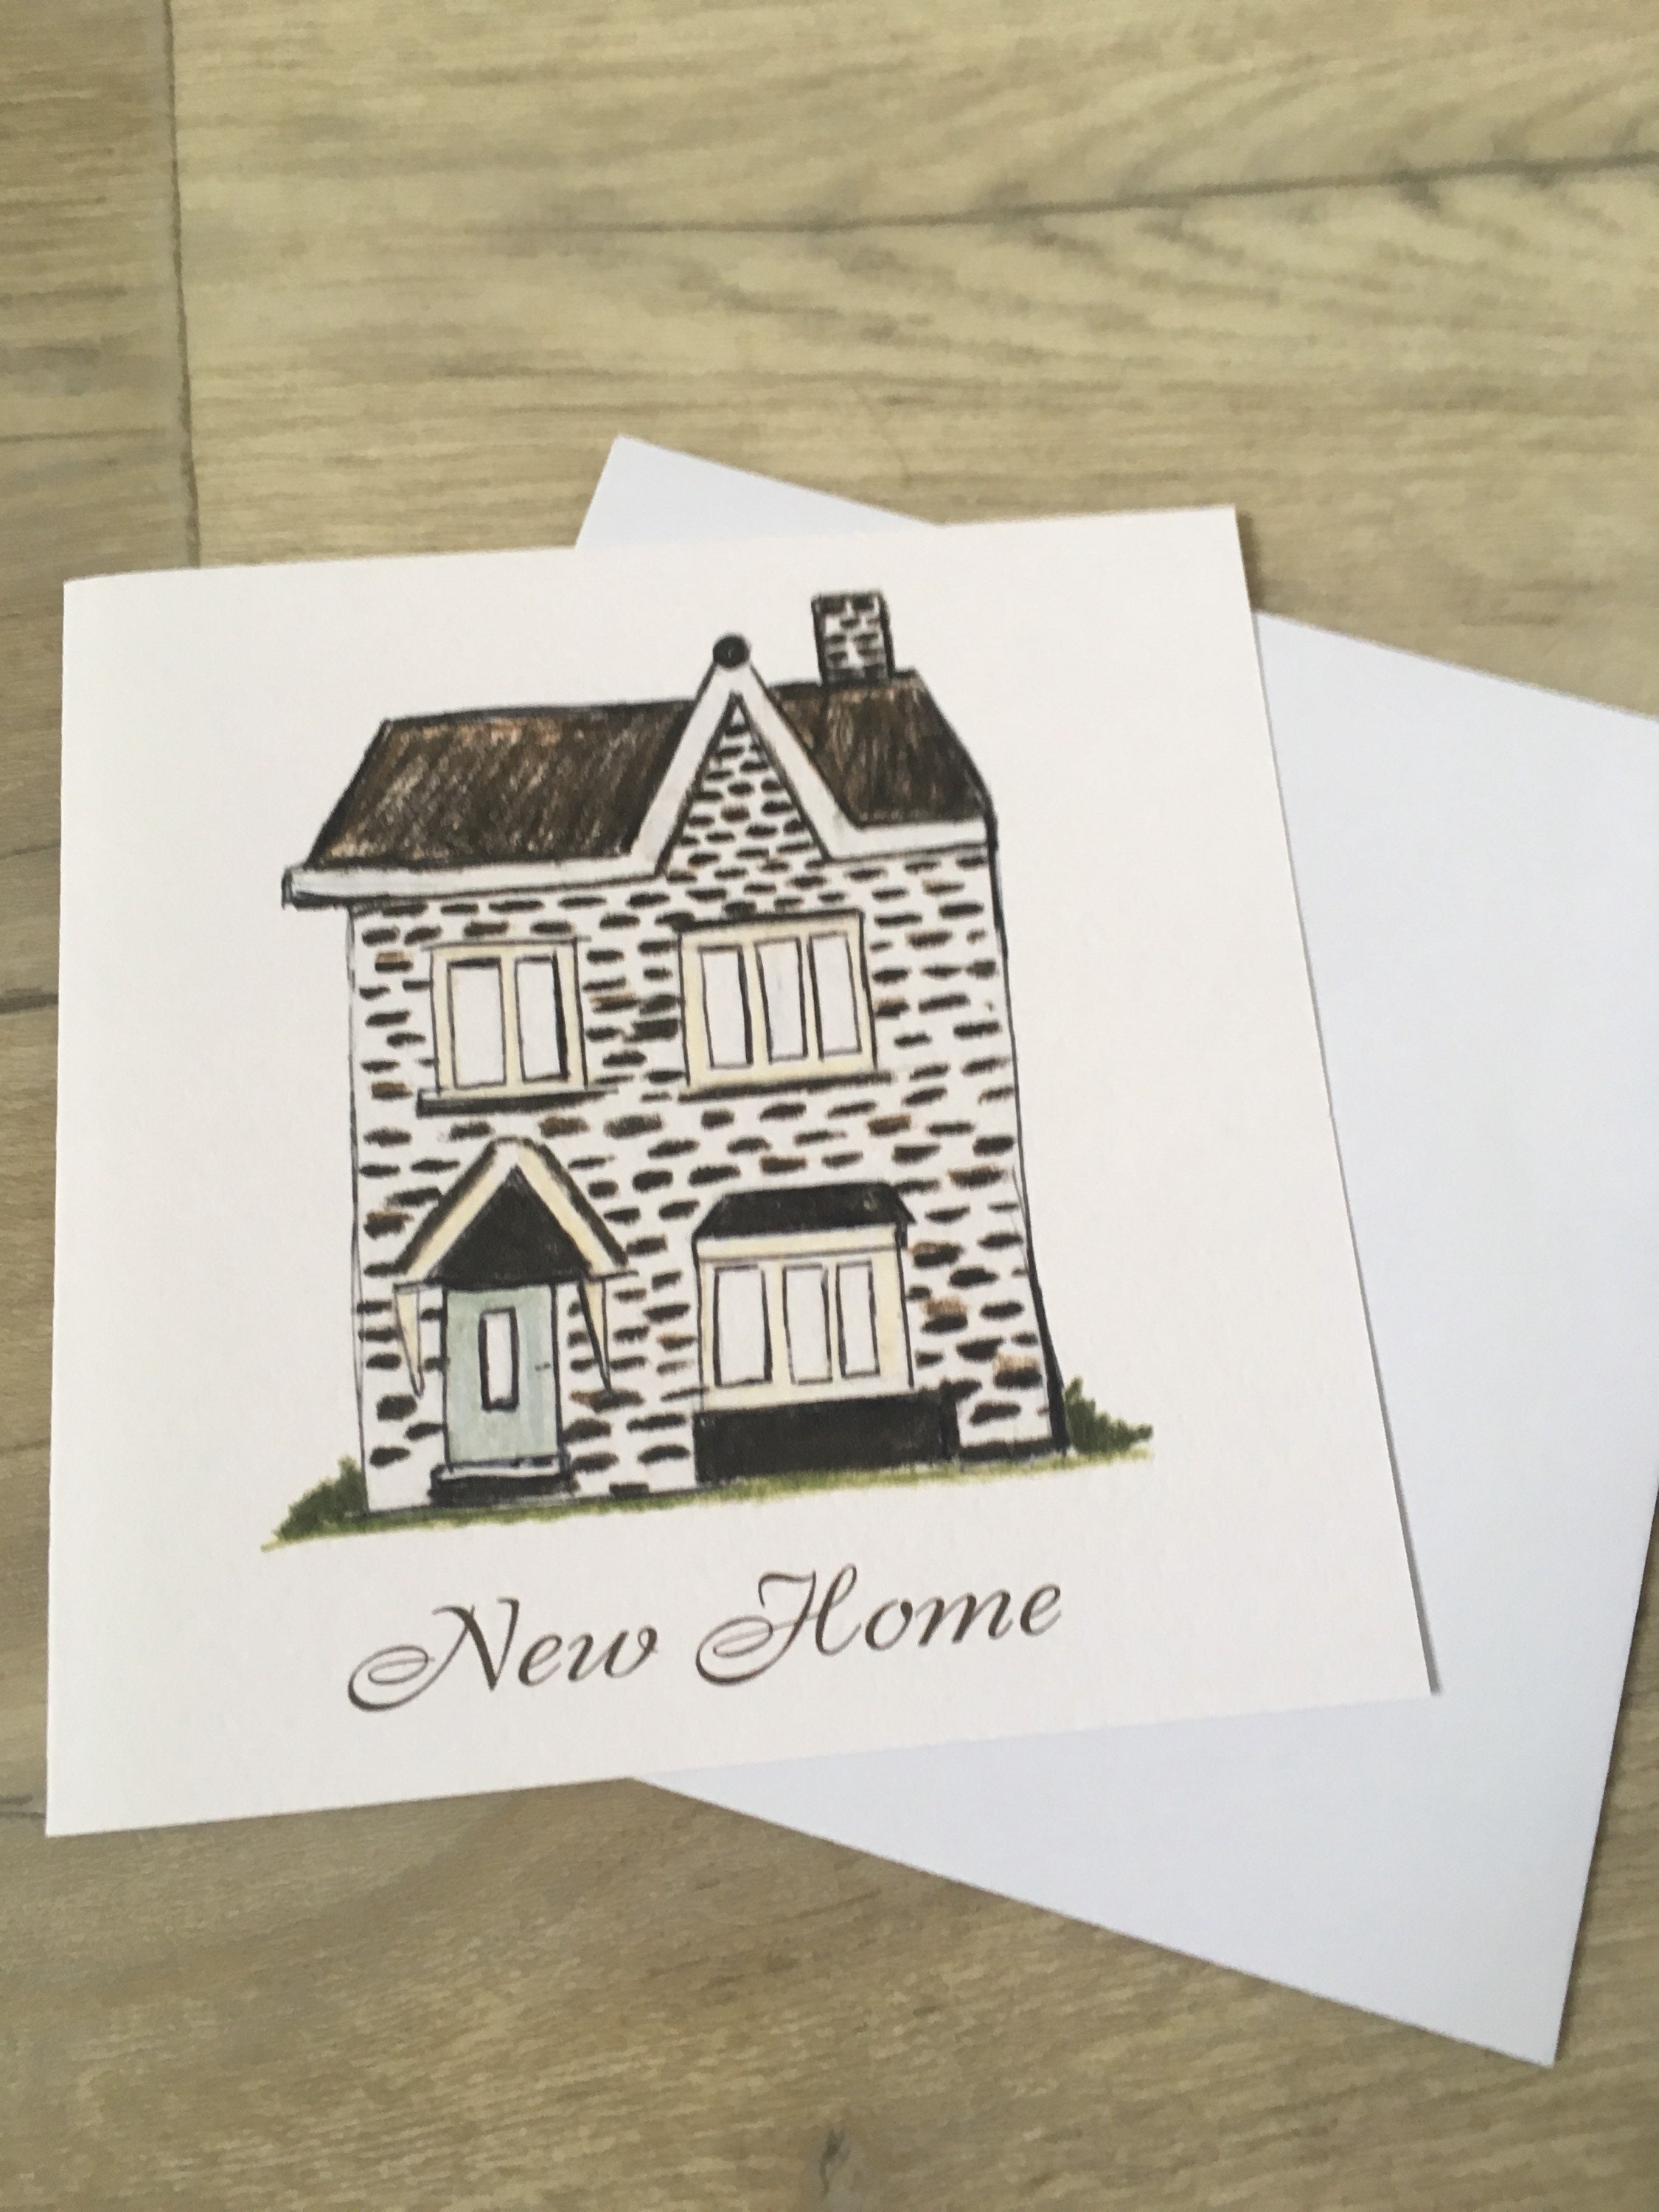 New Home New House Moving Card For New Home Owners Moving House